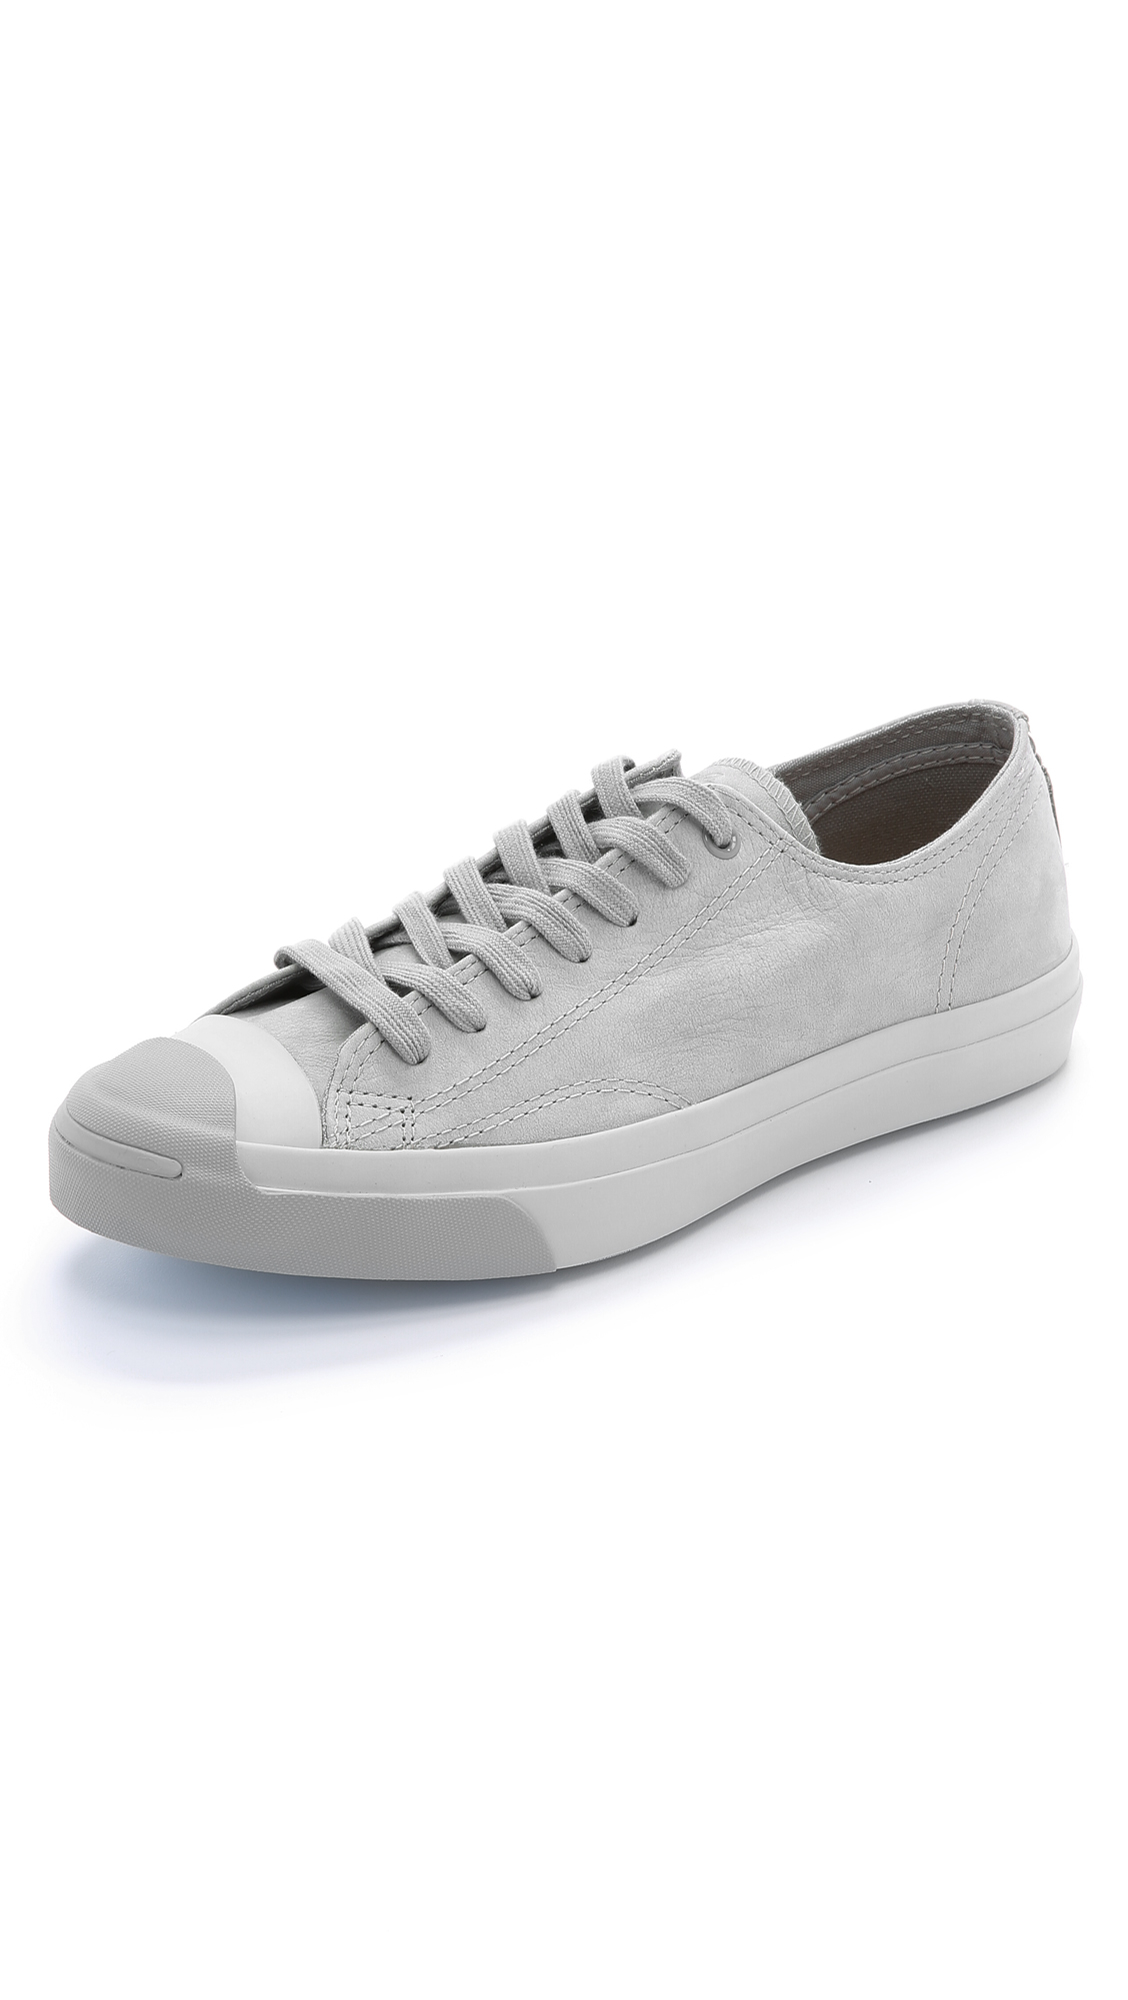 converse jack purcell gray 36zh  Gallery